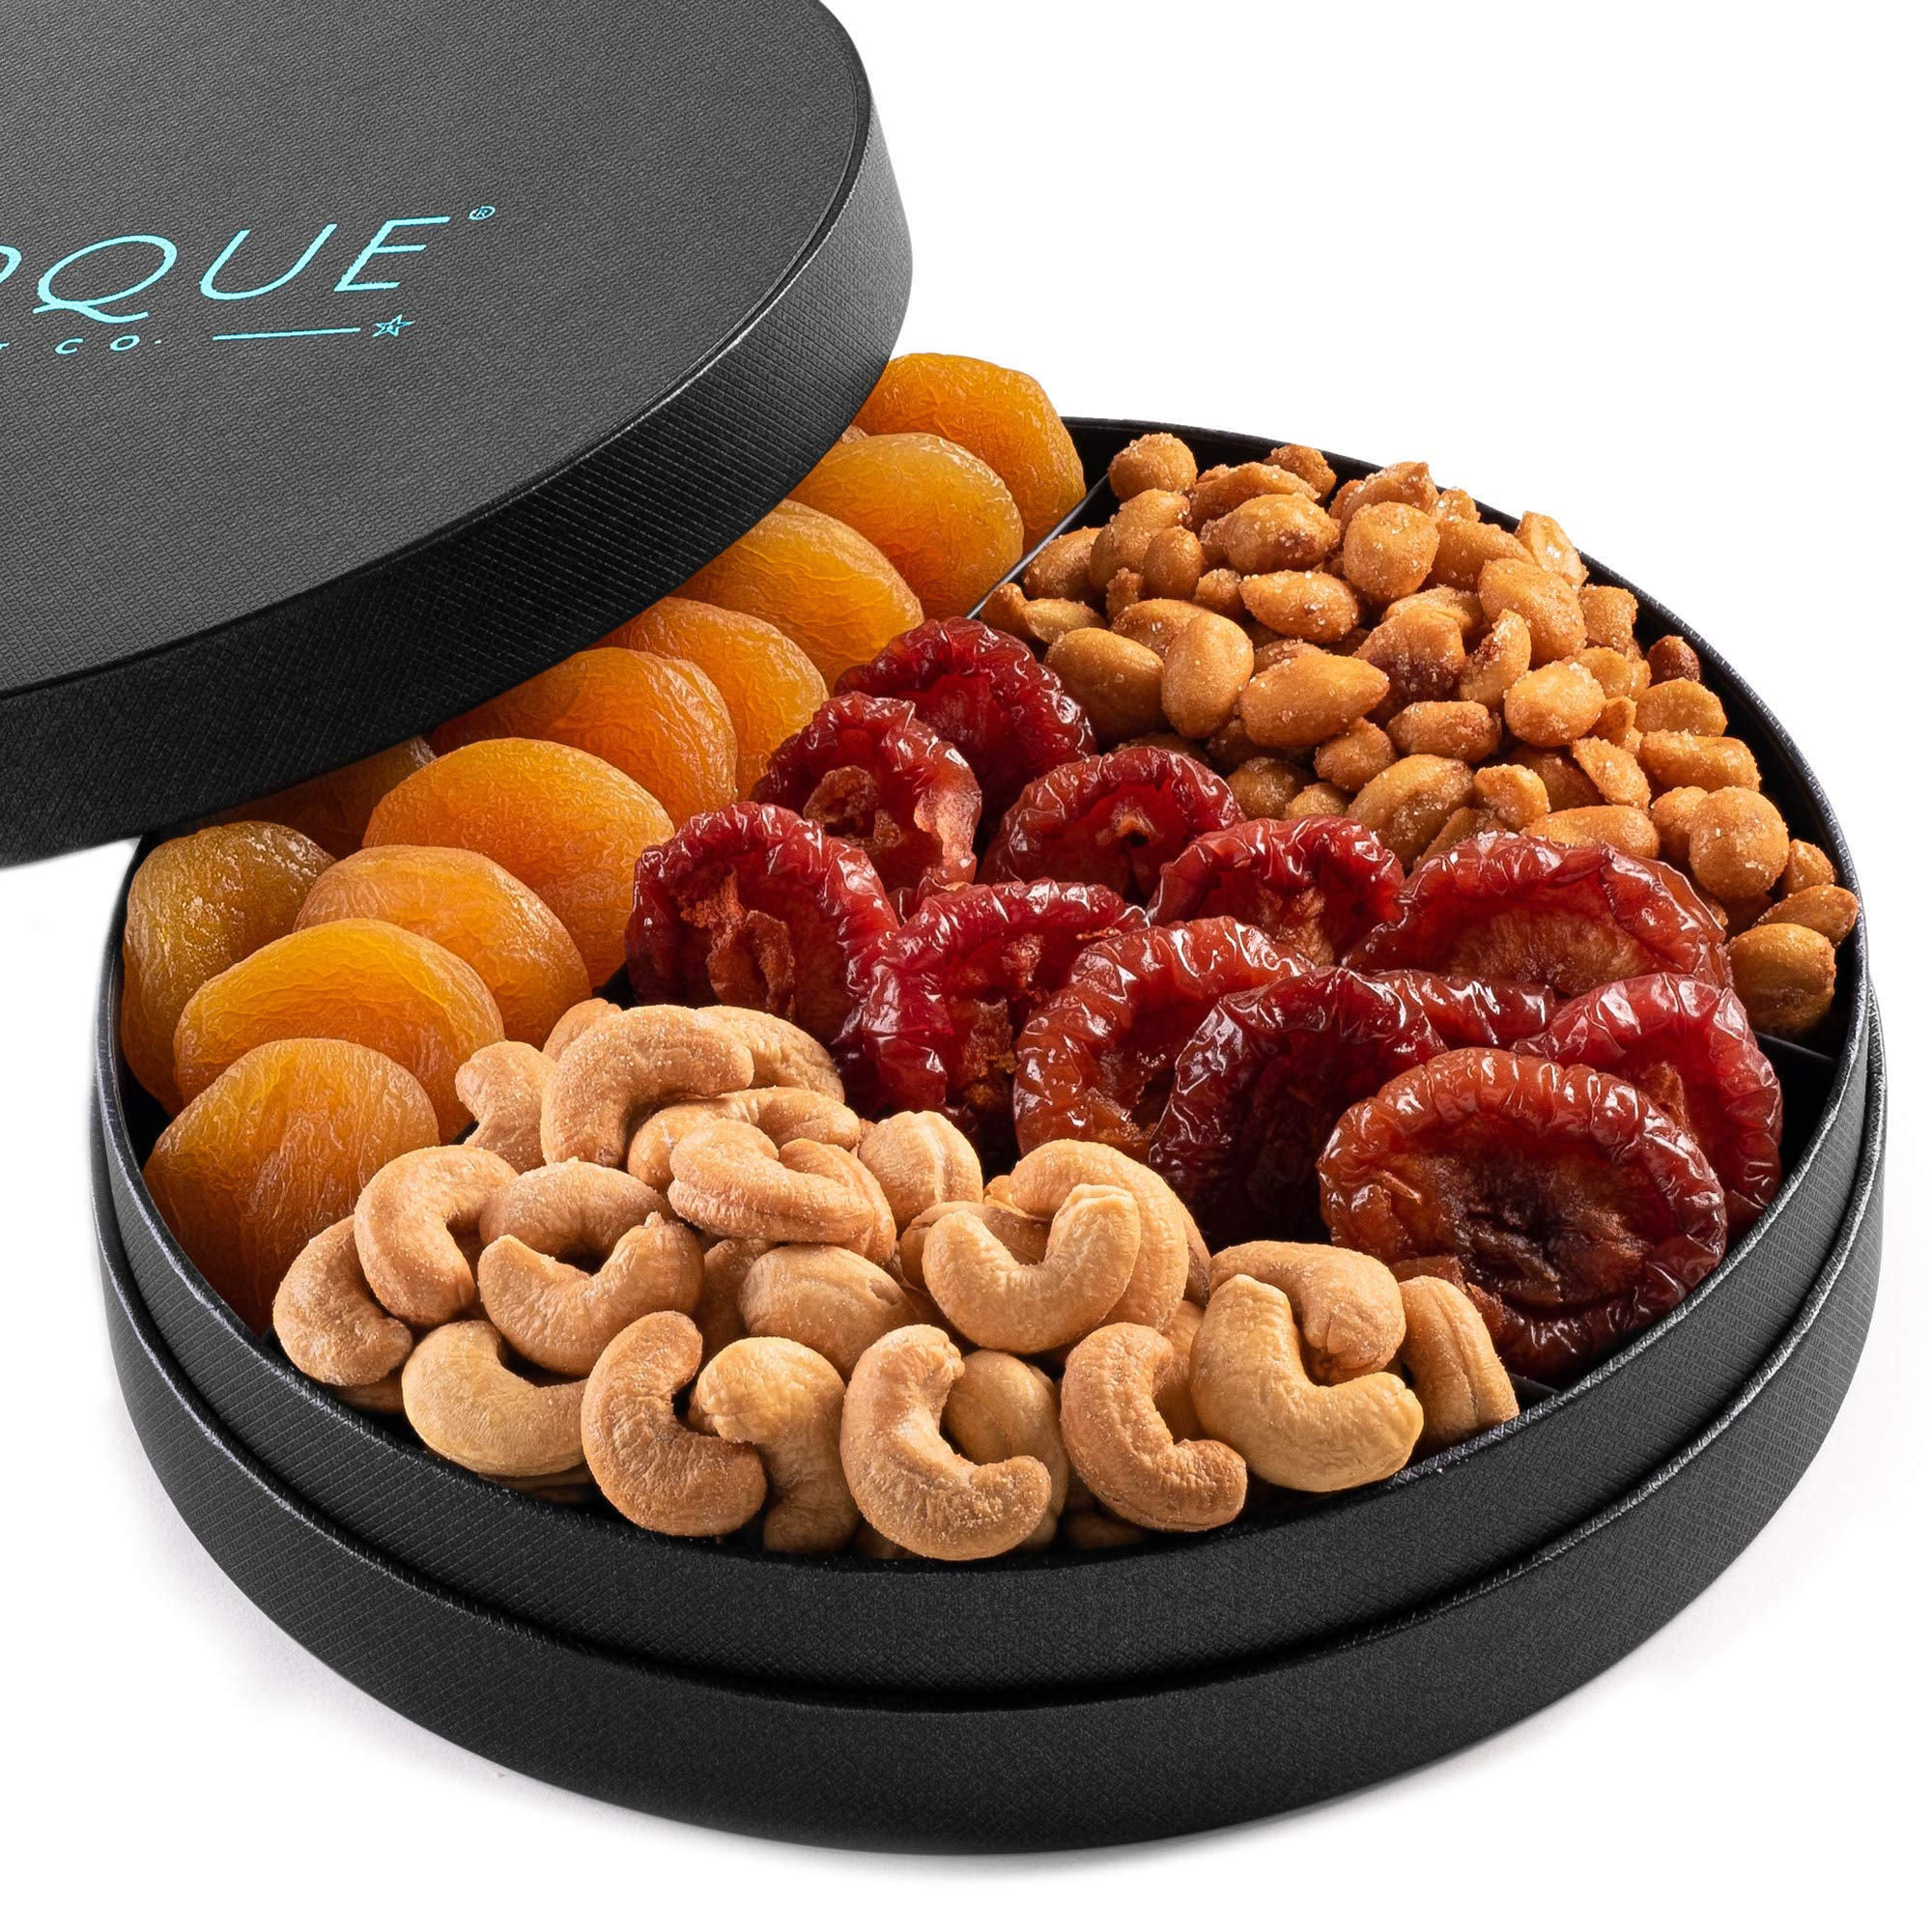 Gourmet Nut and Dried Fruit Gift Tray - 8''